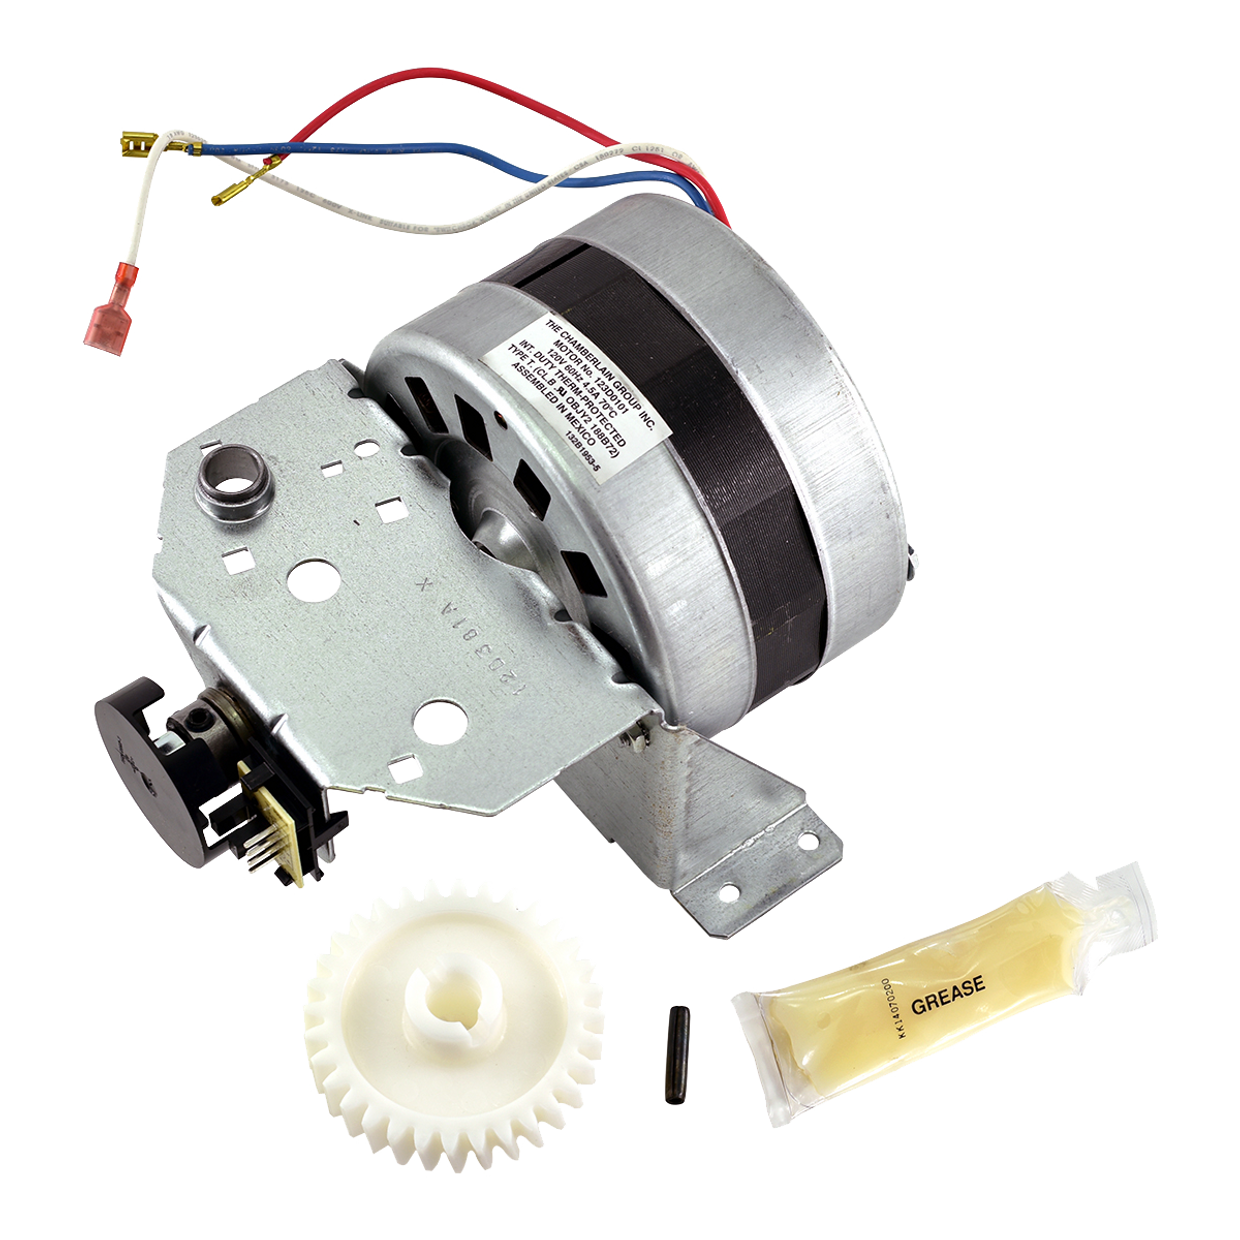 041D3058- Motor and Bracket Kit